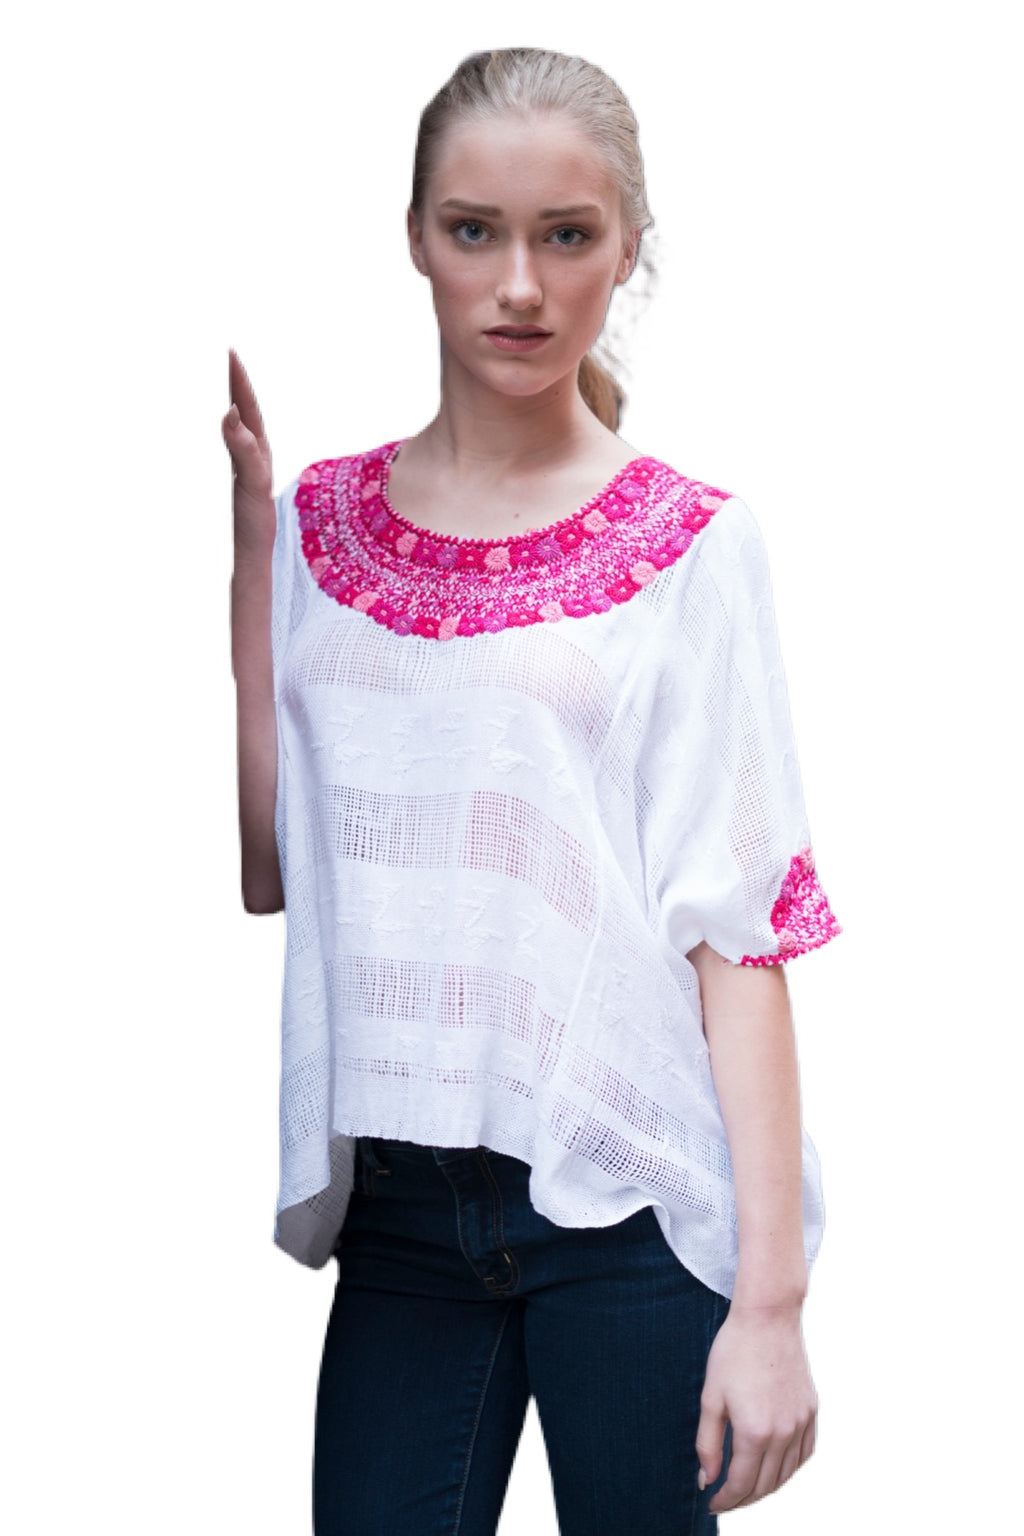 Evelyn Guatemalan Blouse - Pink